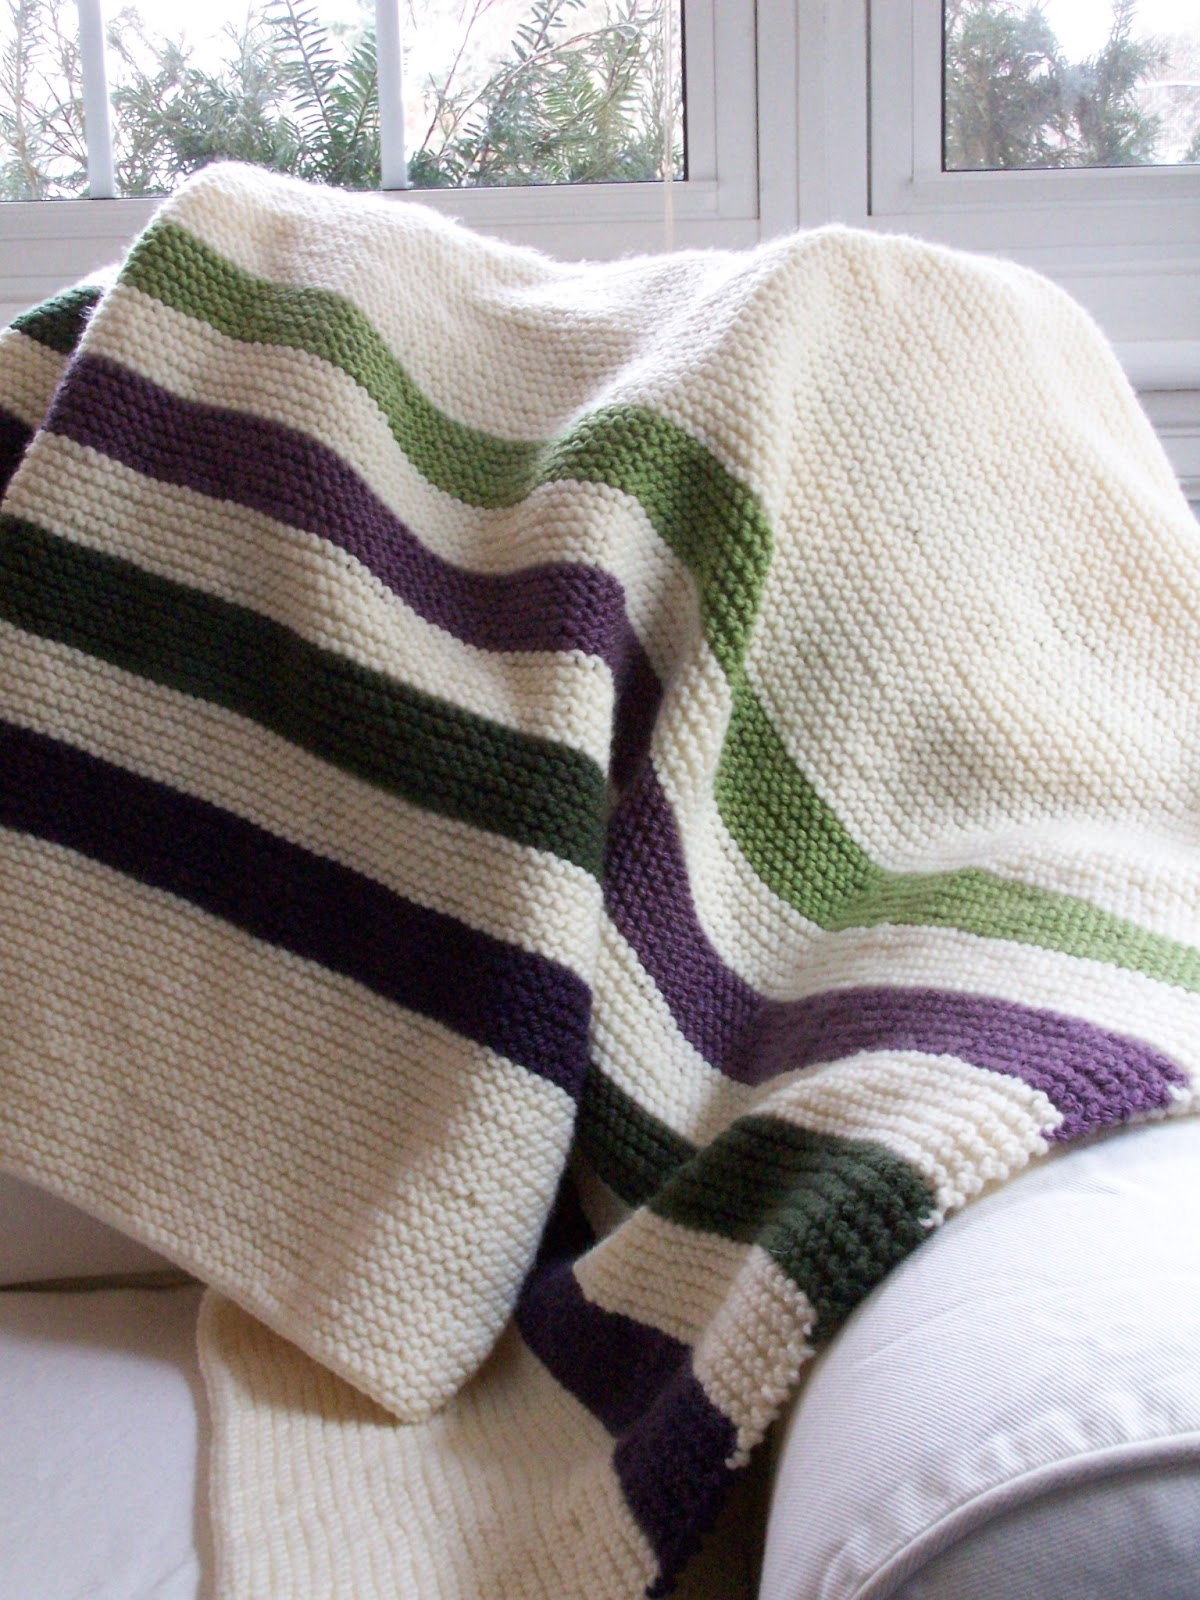 Delorme designs purl bee hudsons bay crib blanket purl bee hudsons bay crib blanket bankloansurffo Image collections